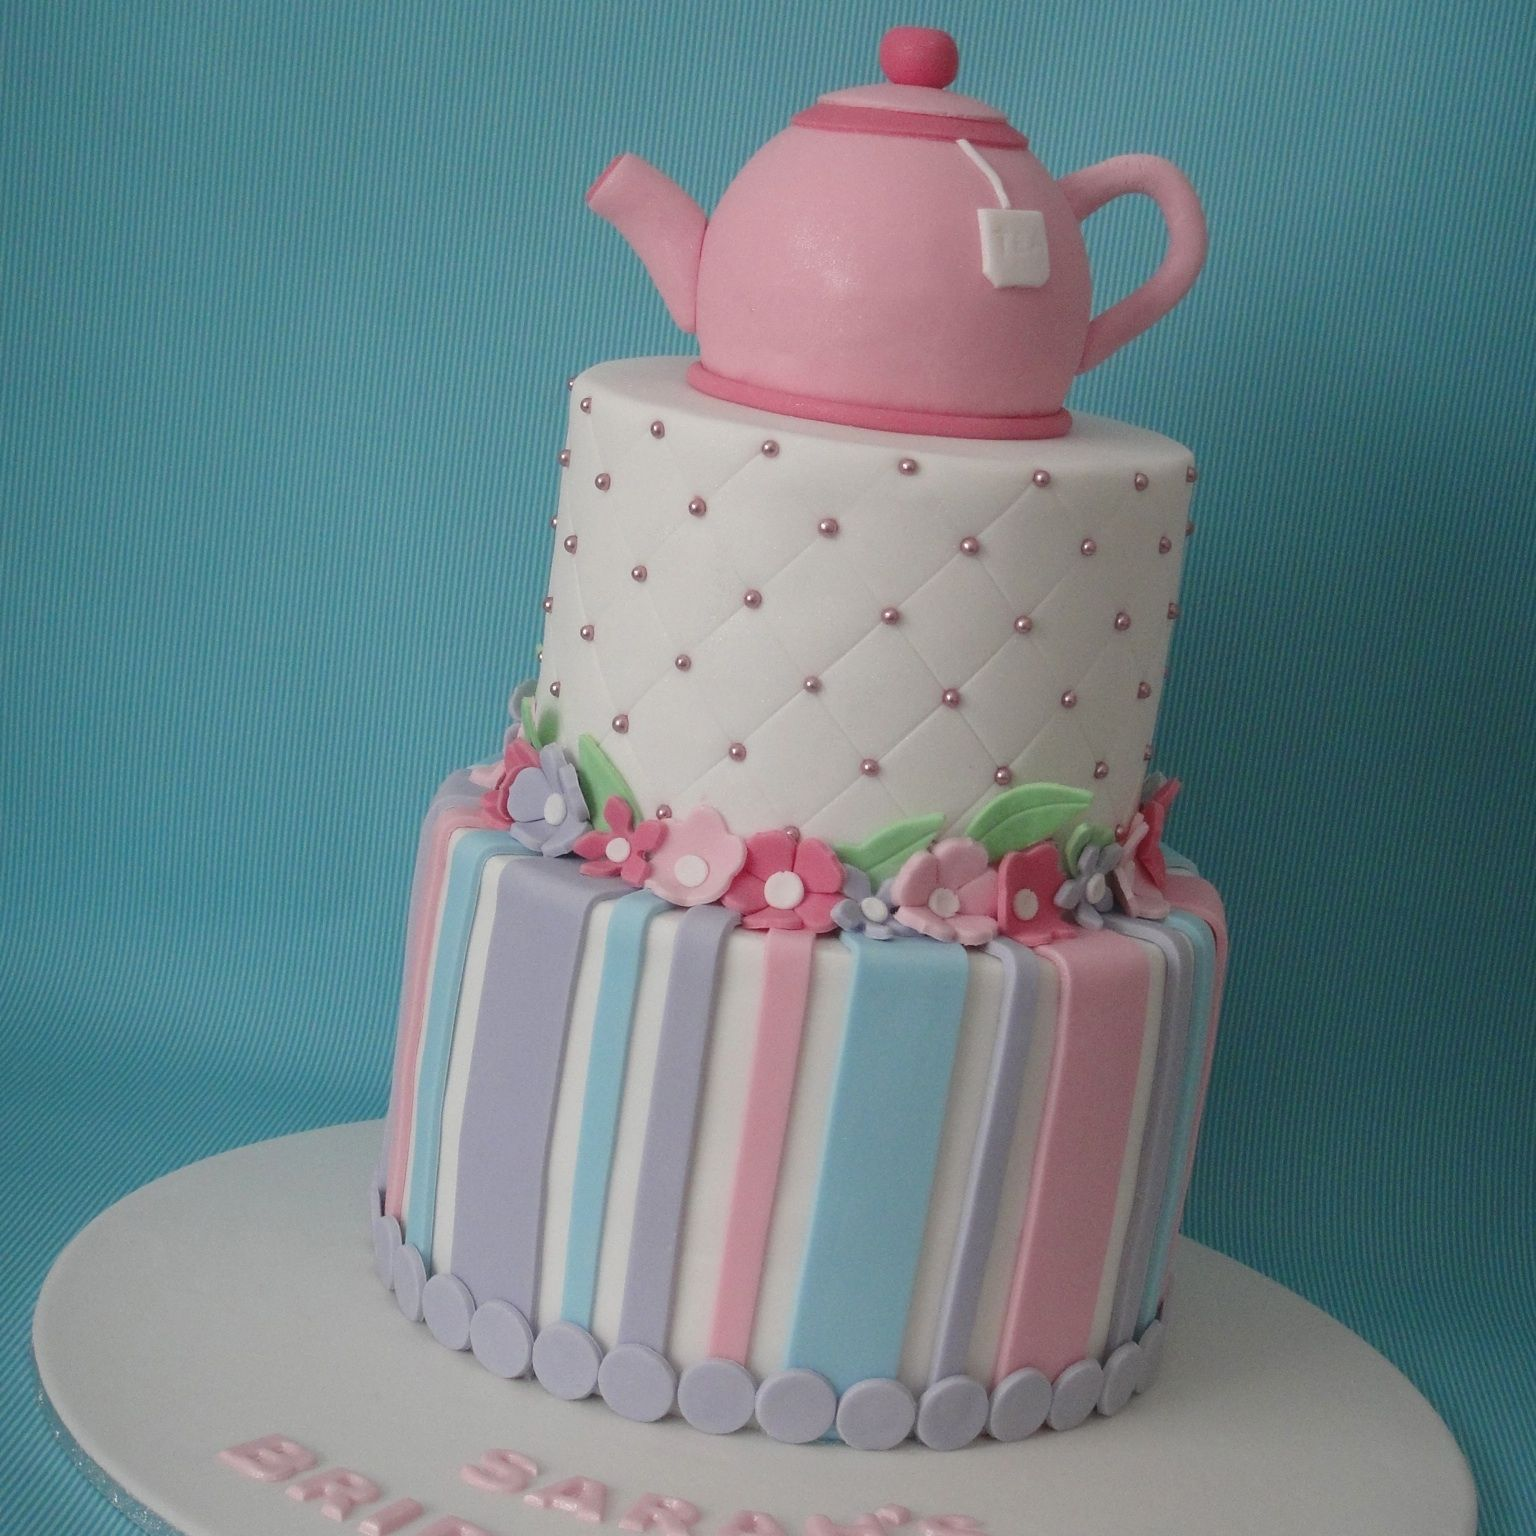 Bridal shower kitchen tea cake cakes pinterest for Bridal shower kitchen tea ideas fashion